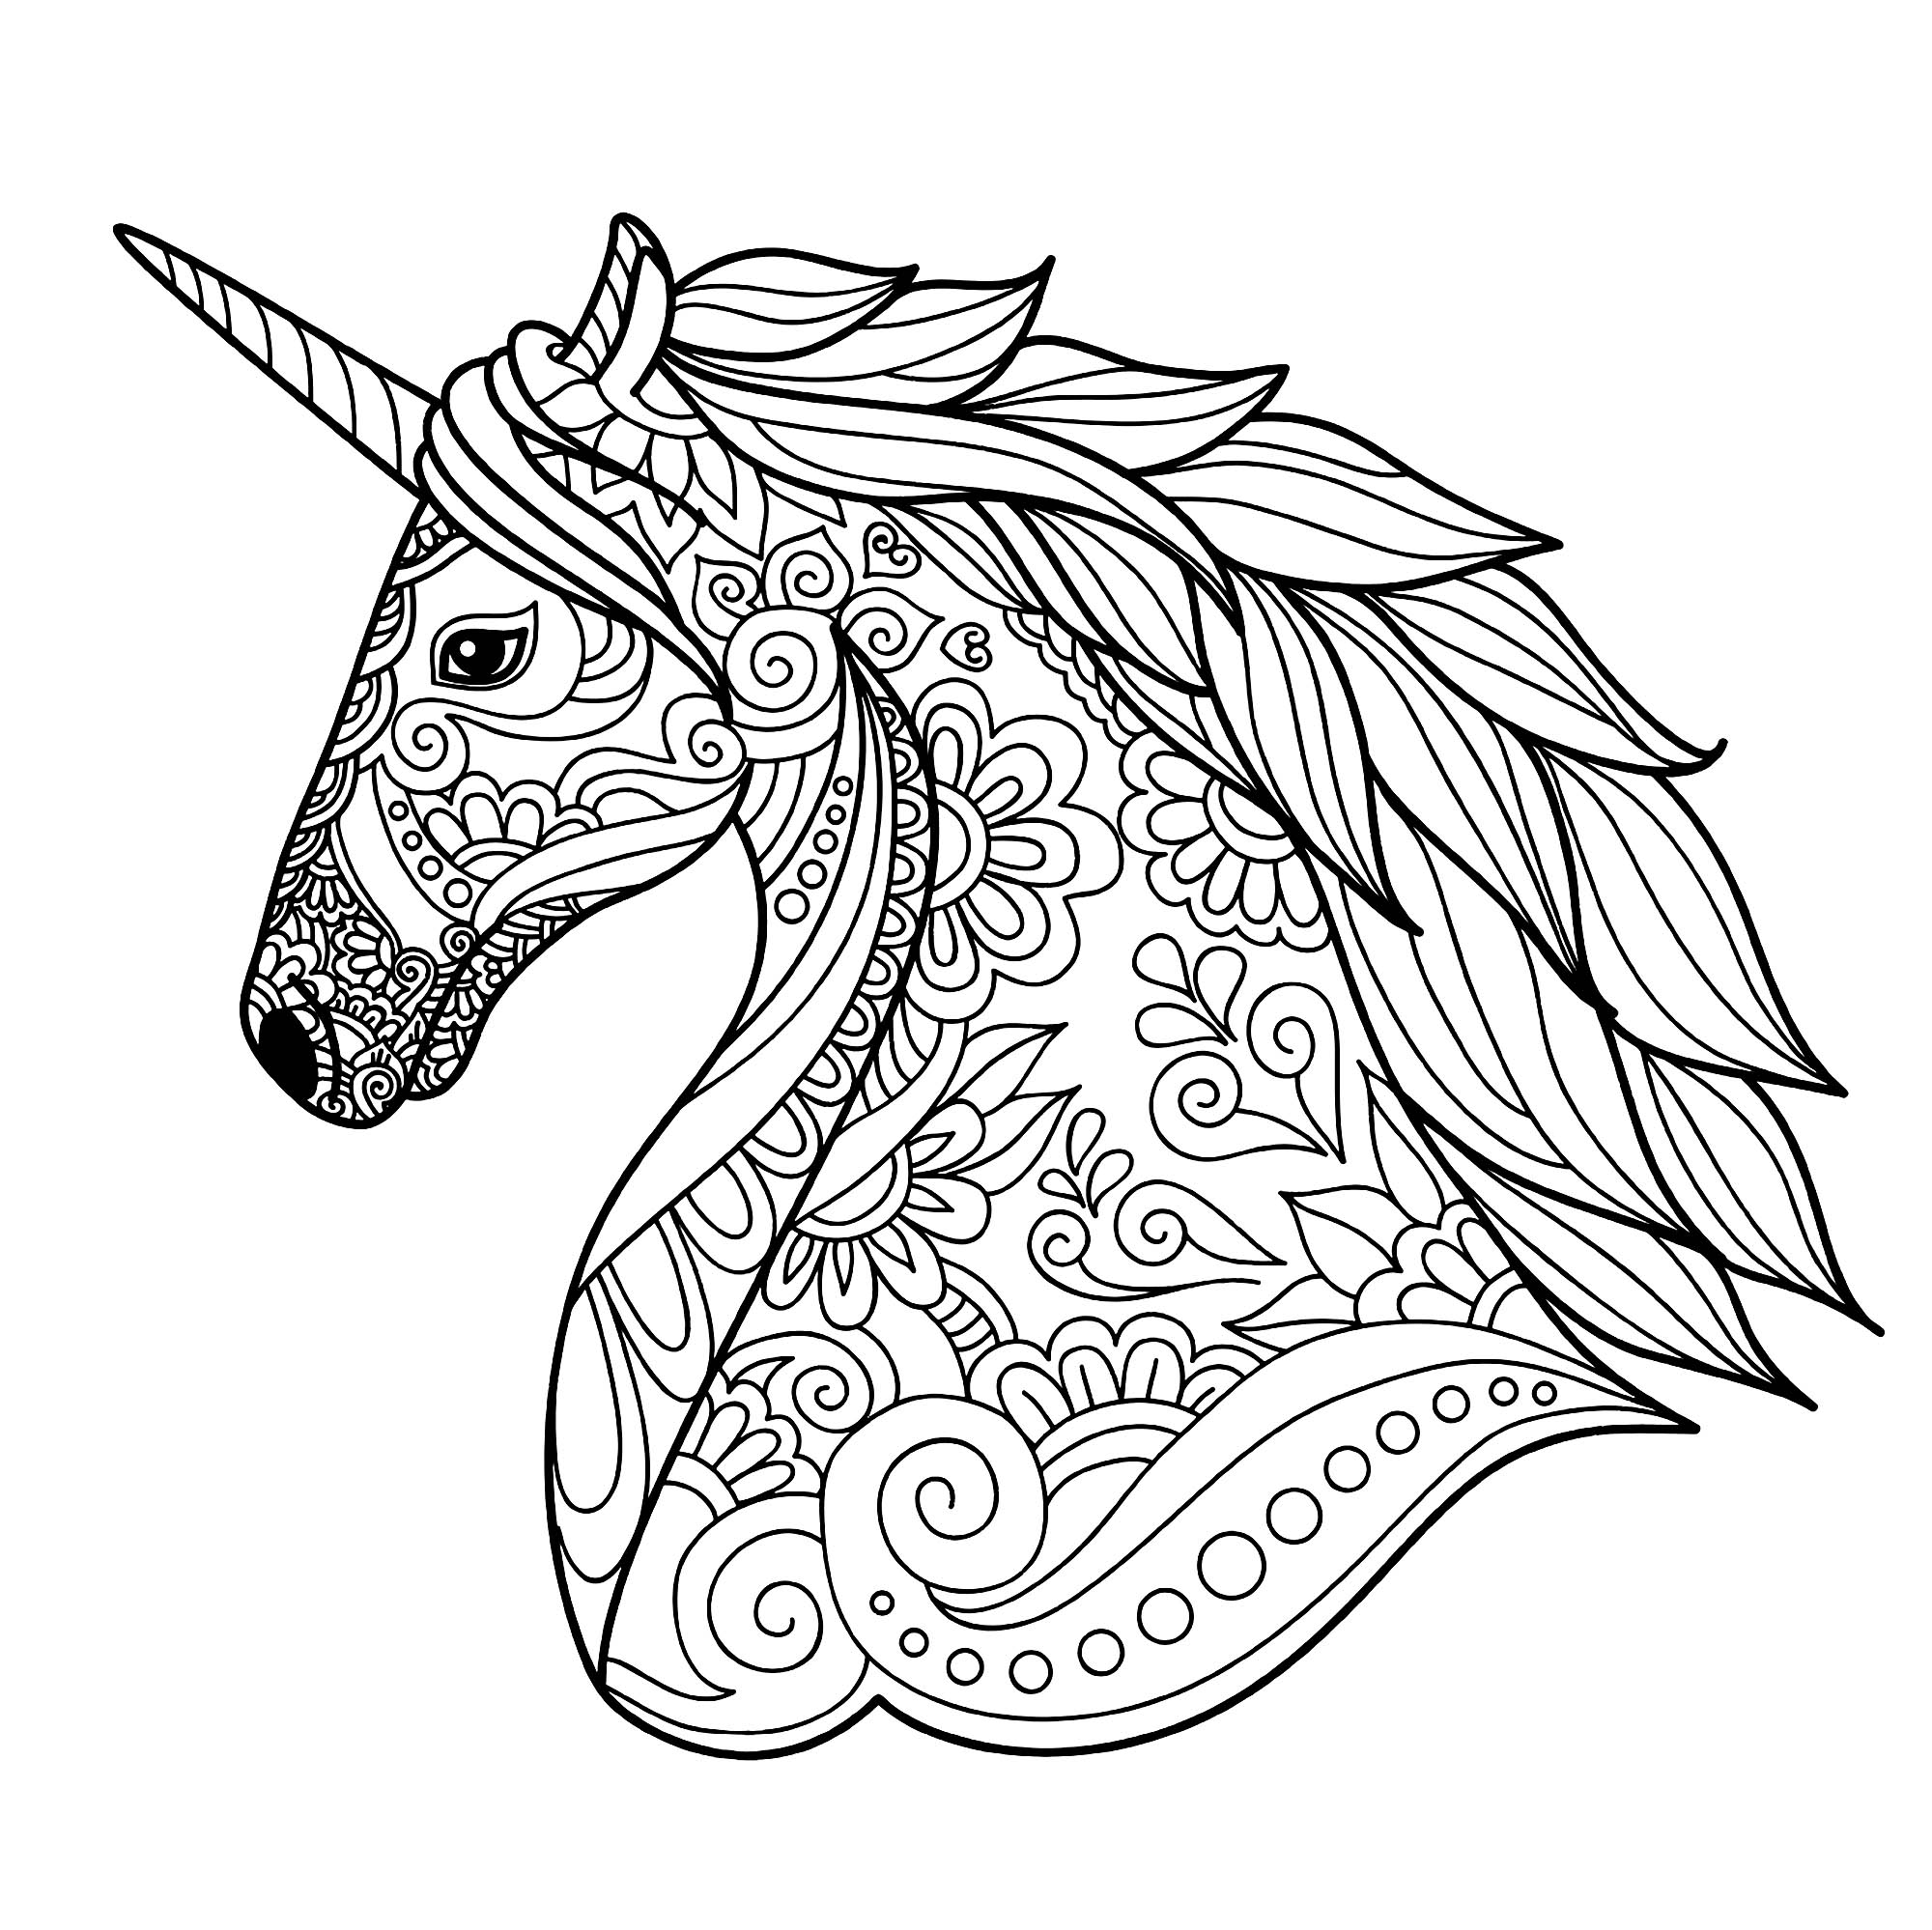 unicorn coloring sheets printable unicorn coloring pages to download and print for free coloring unicorn sheets printable